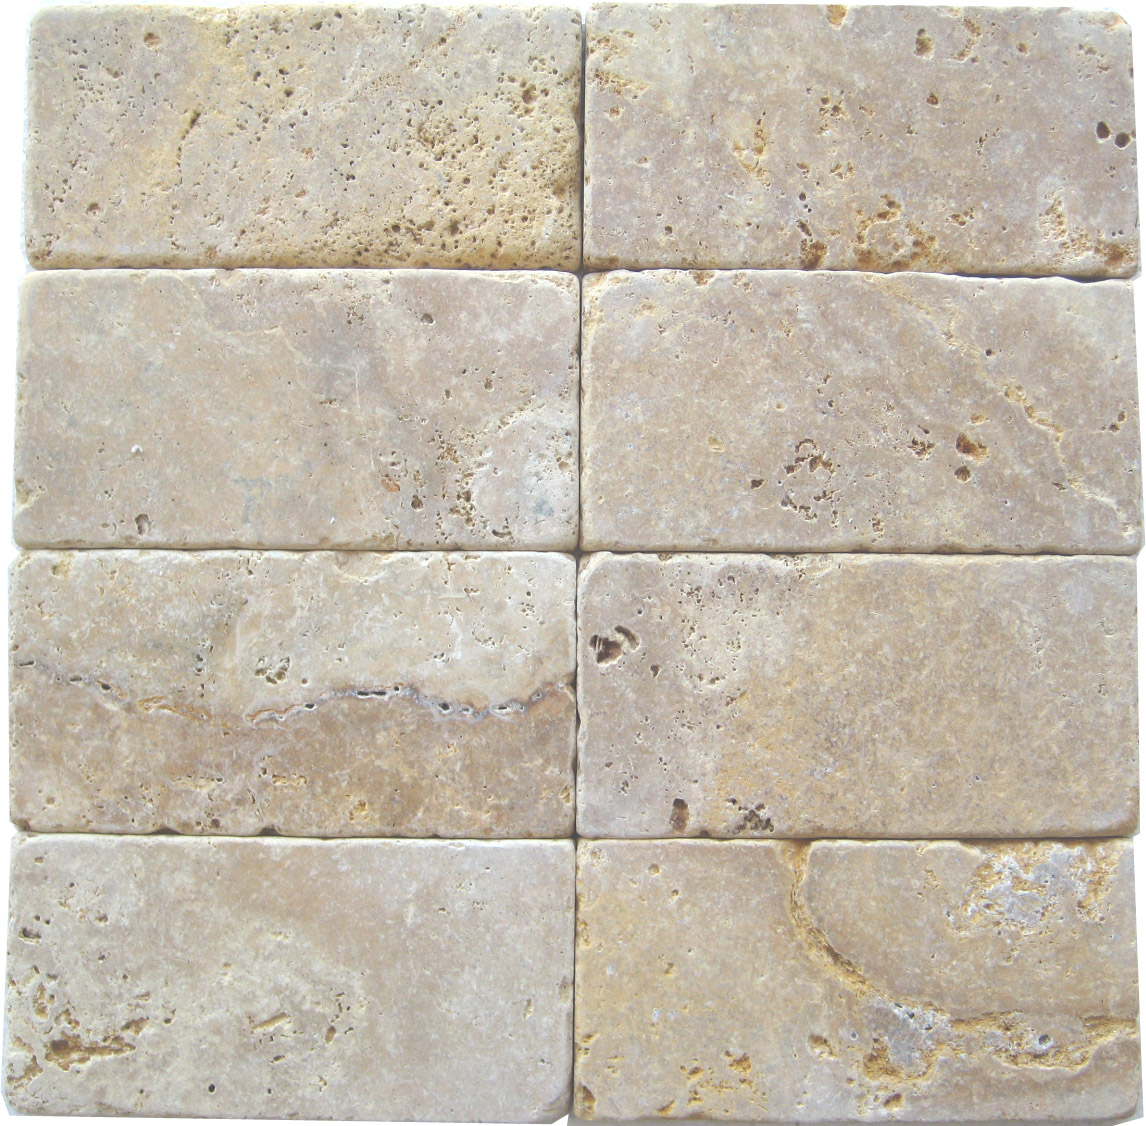 Golden Sienna Travertine Tumbled Tiles E36 3000 In South Florida